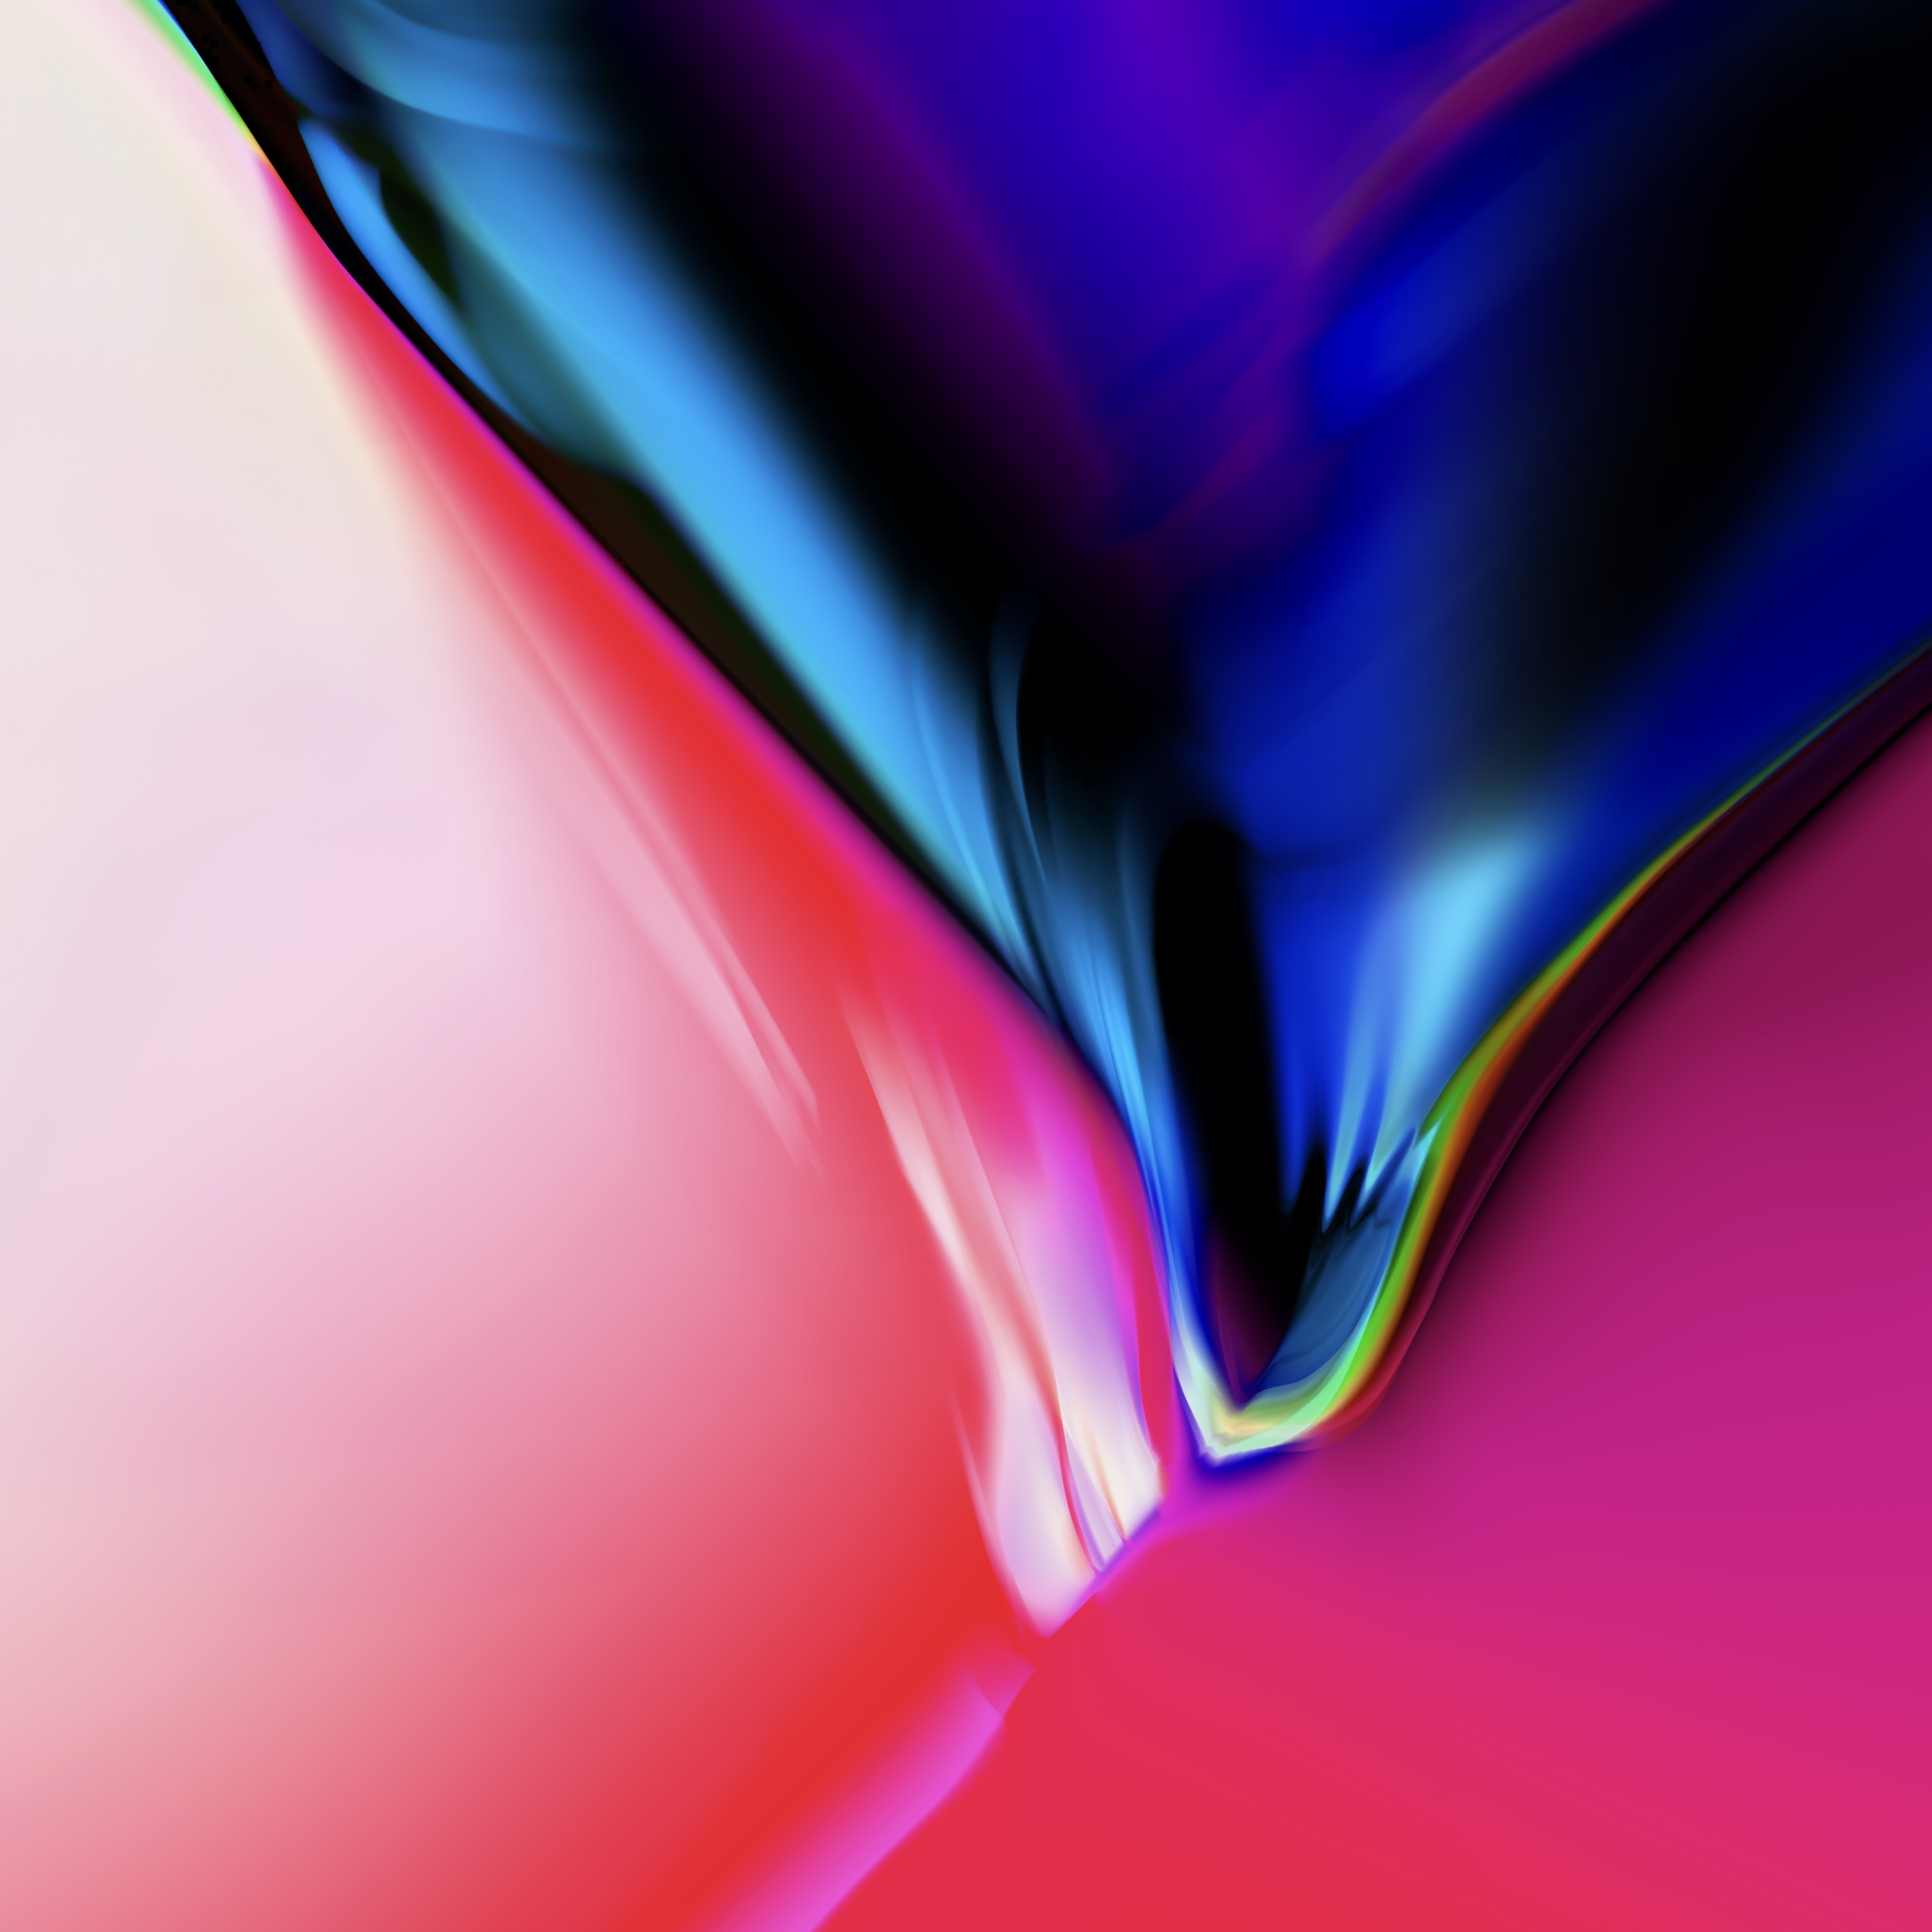 Wallpaper of iOS 11 for iPhone